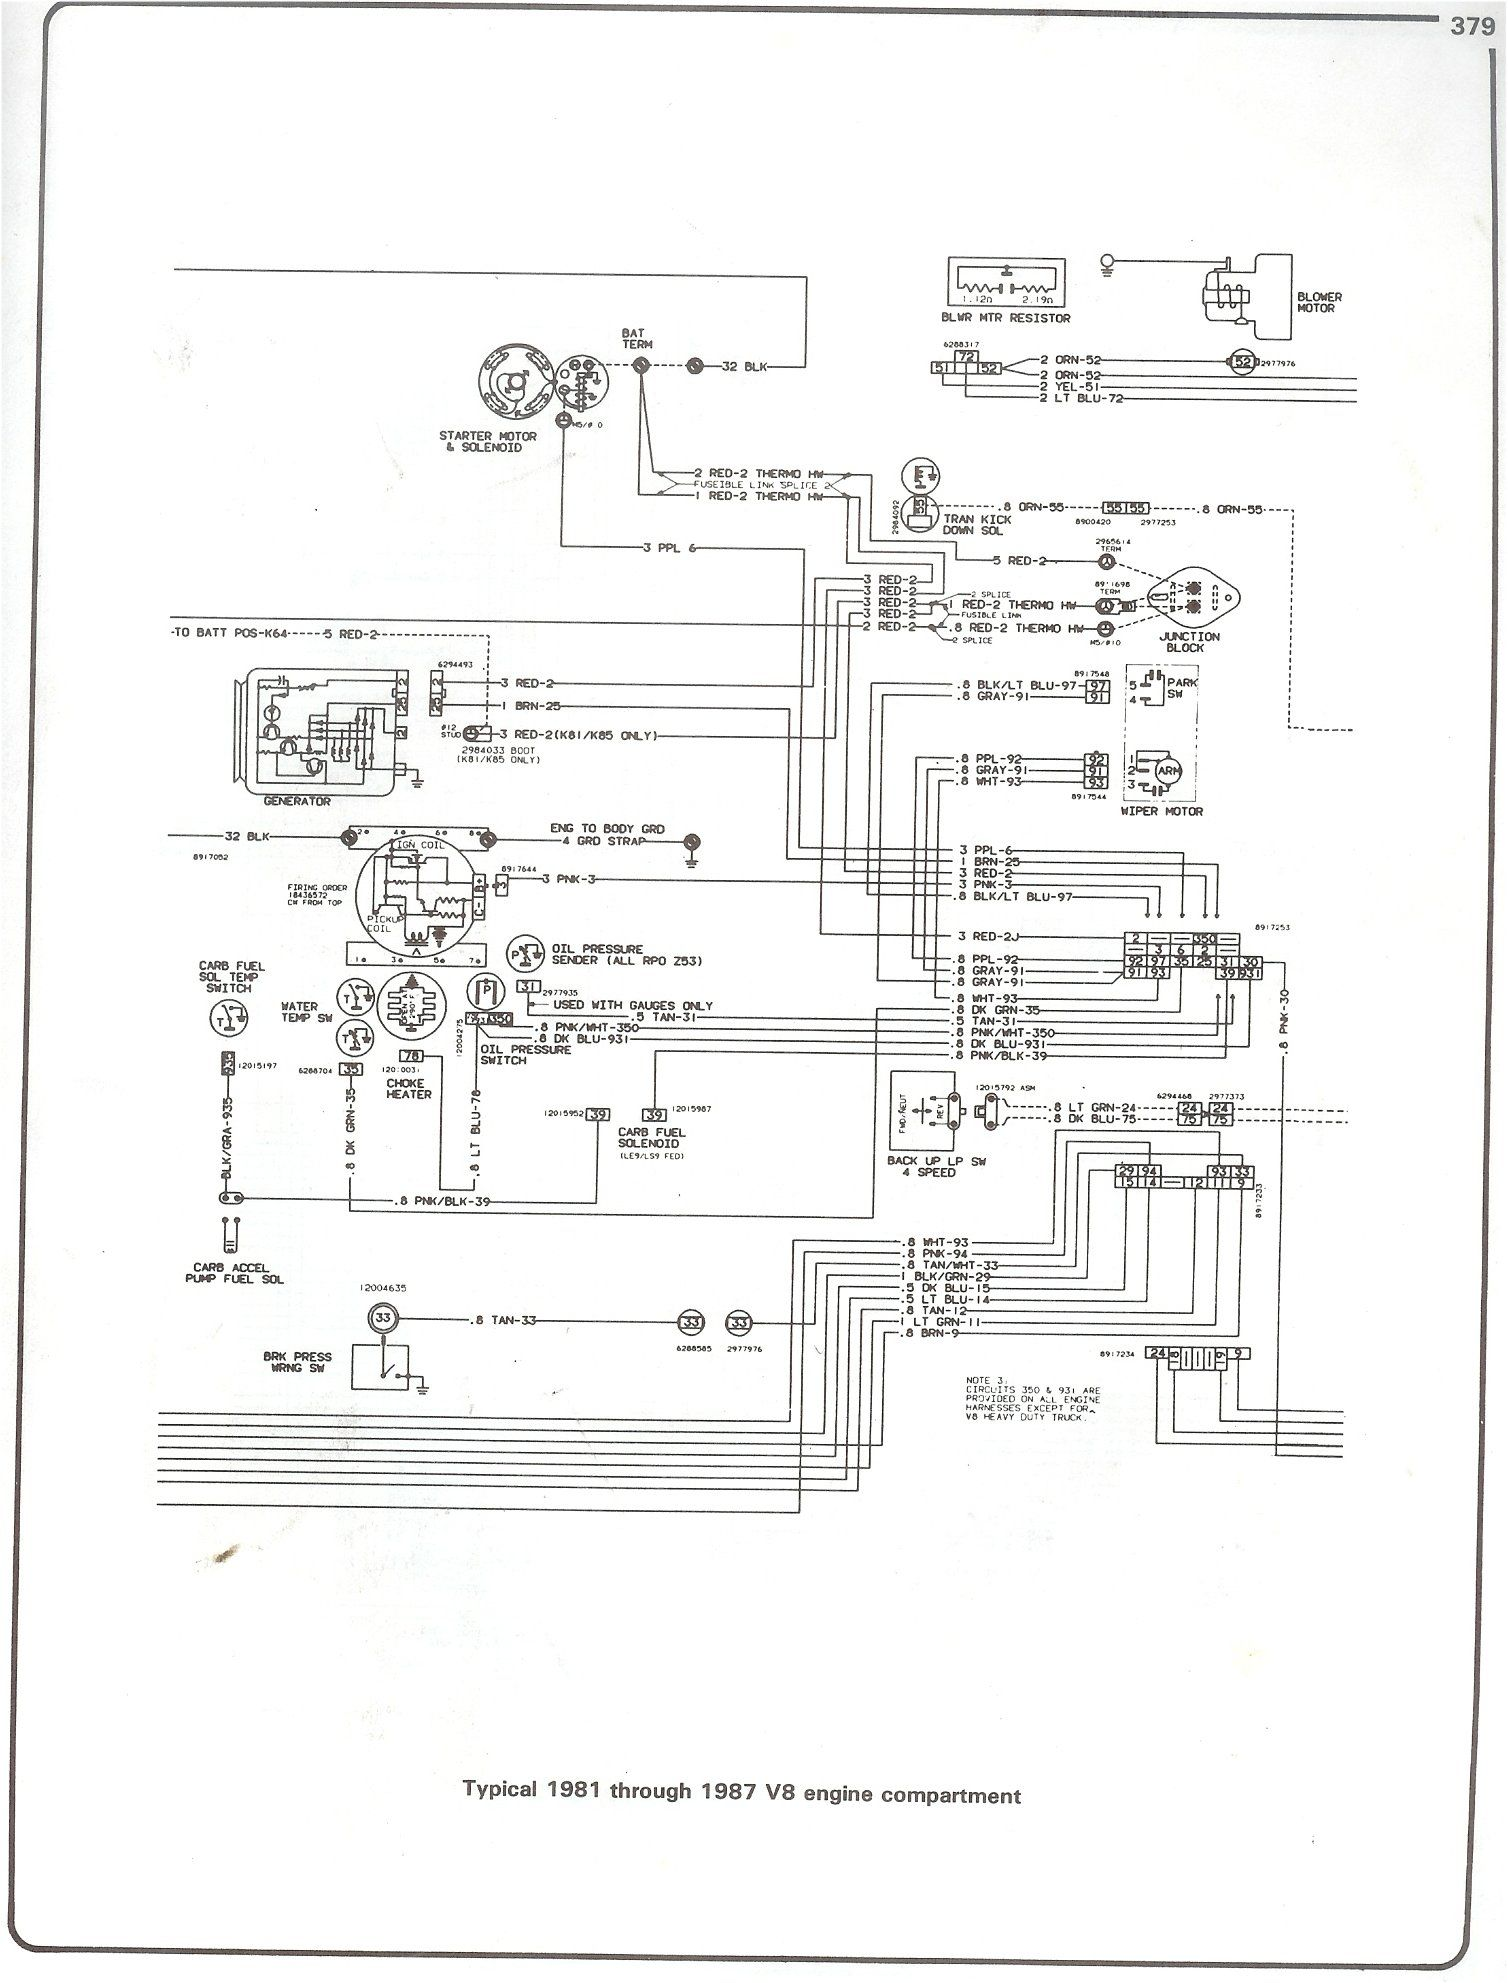 medium resolution of pin by malcolm cail on projects to try chevy trucks 85 chevy 85 2 8l chevy vacuum diagram wiring schematic